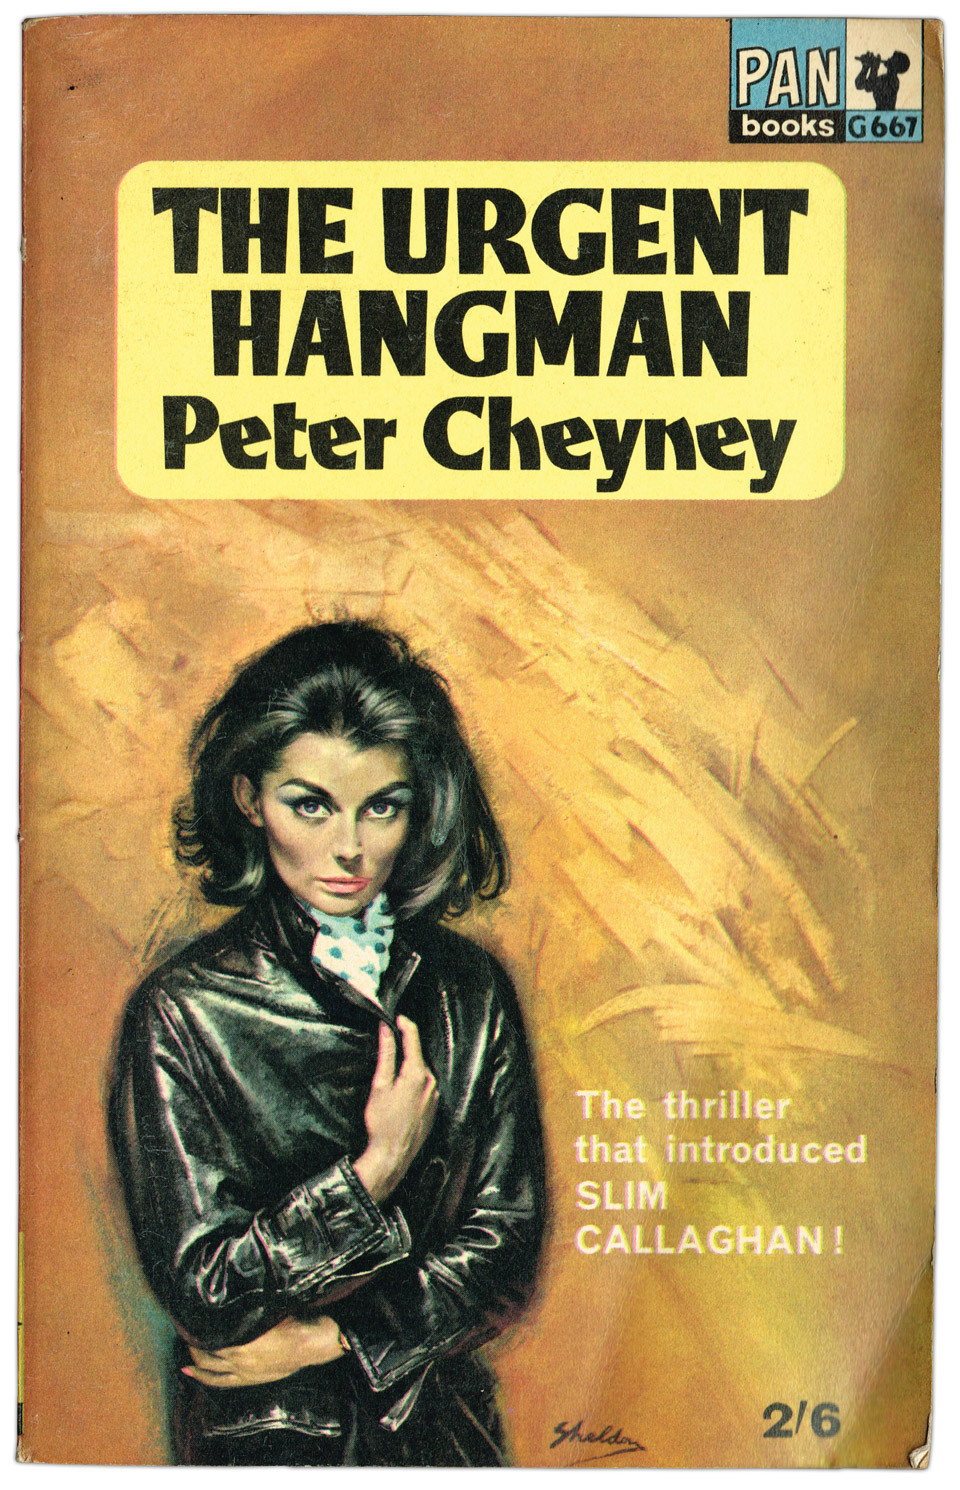 'The Urgent Hangman' by Peter Cheyney.